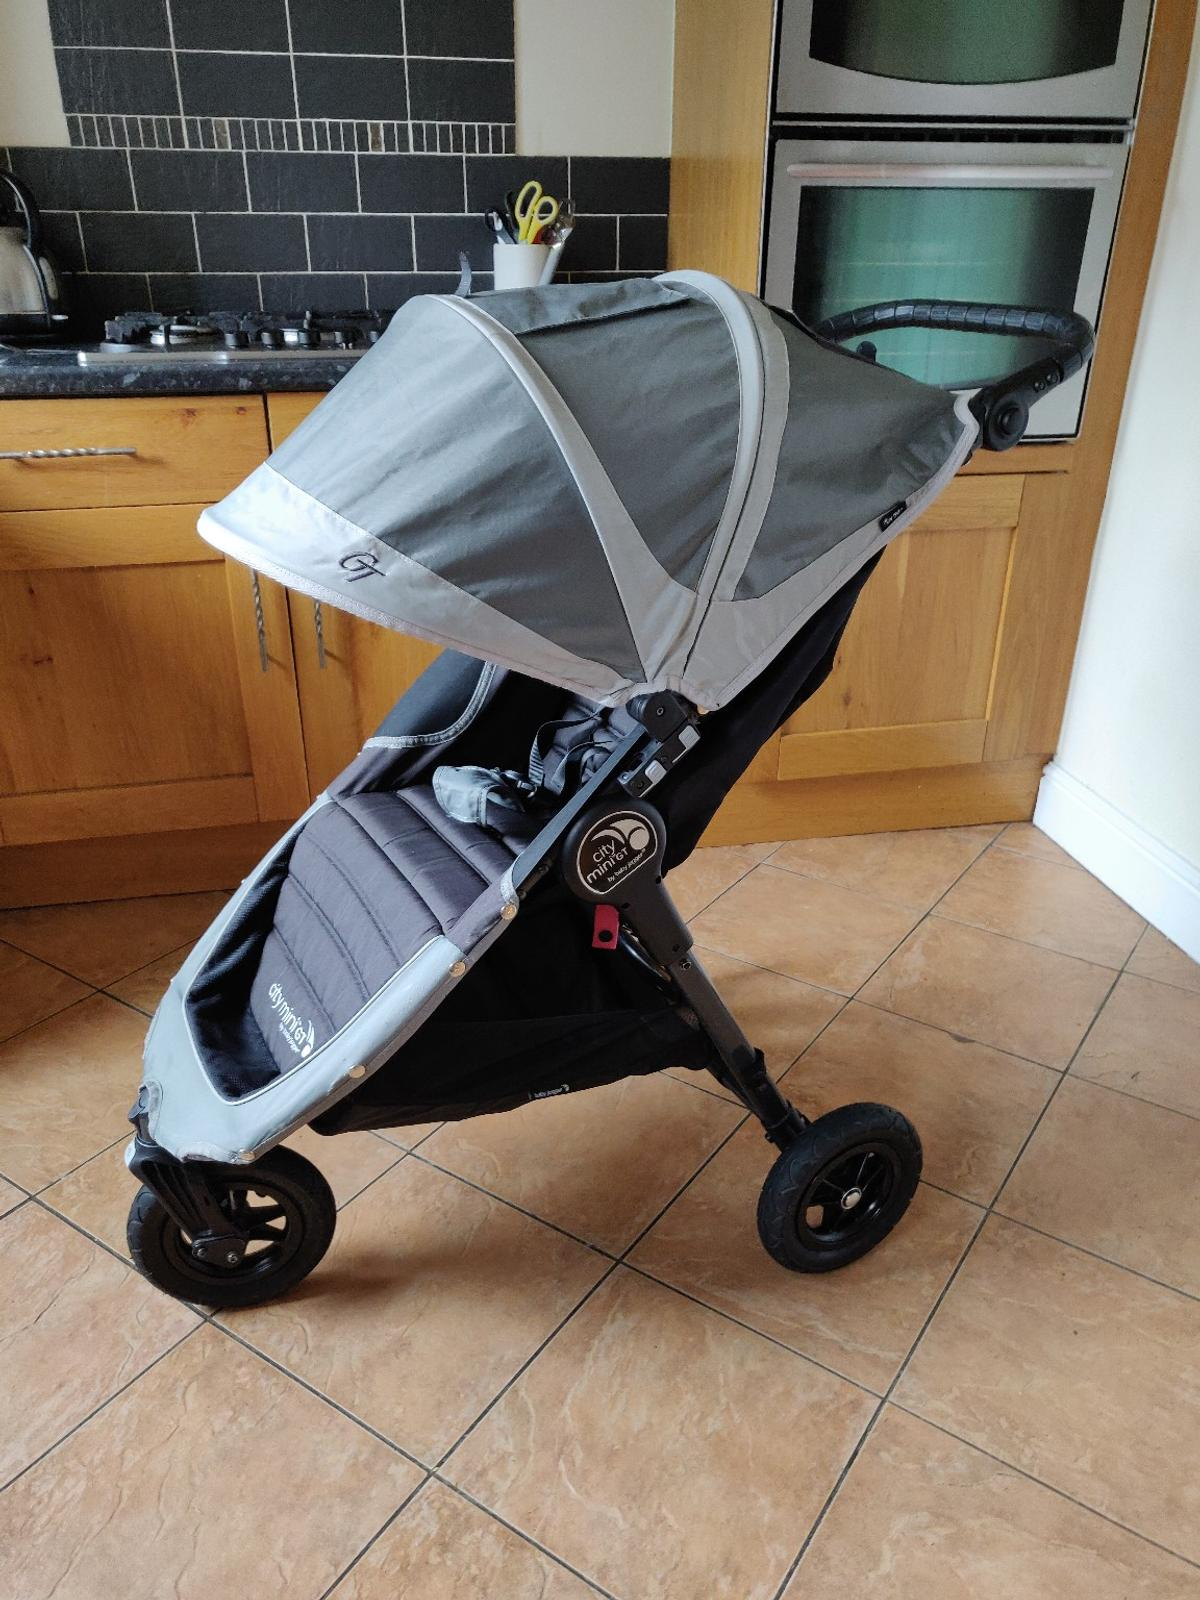 Baby Jogger City Mini Gt In Steel Grey In Wn7 Wigan For 185 00 For